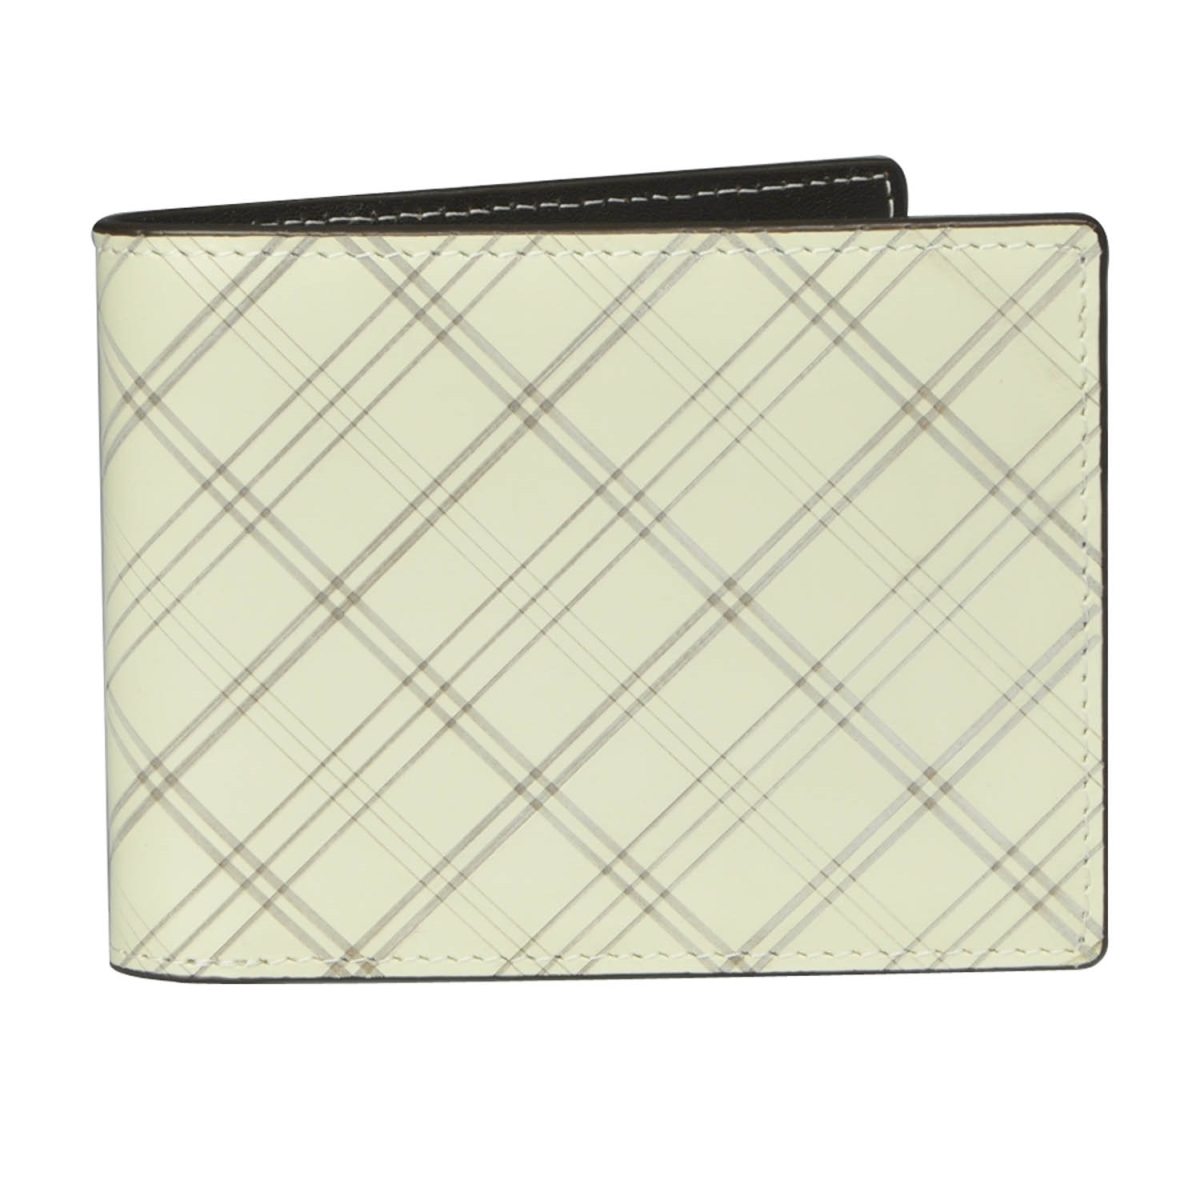 J.FOLD Leather Wallet Plaid - Ivory